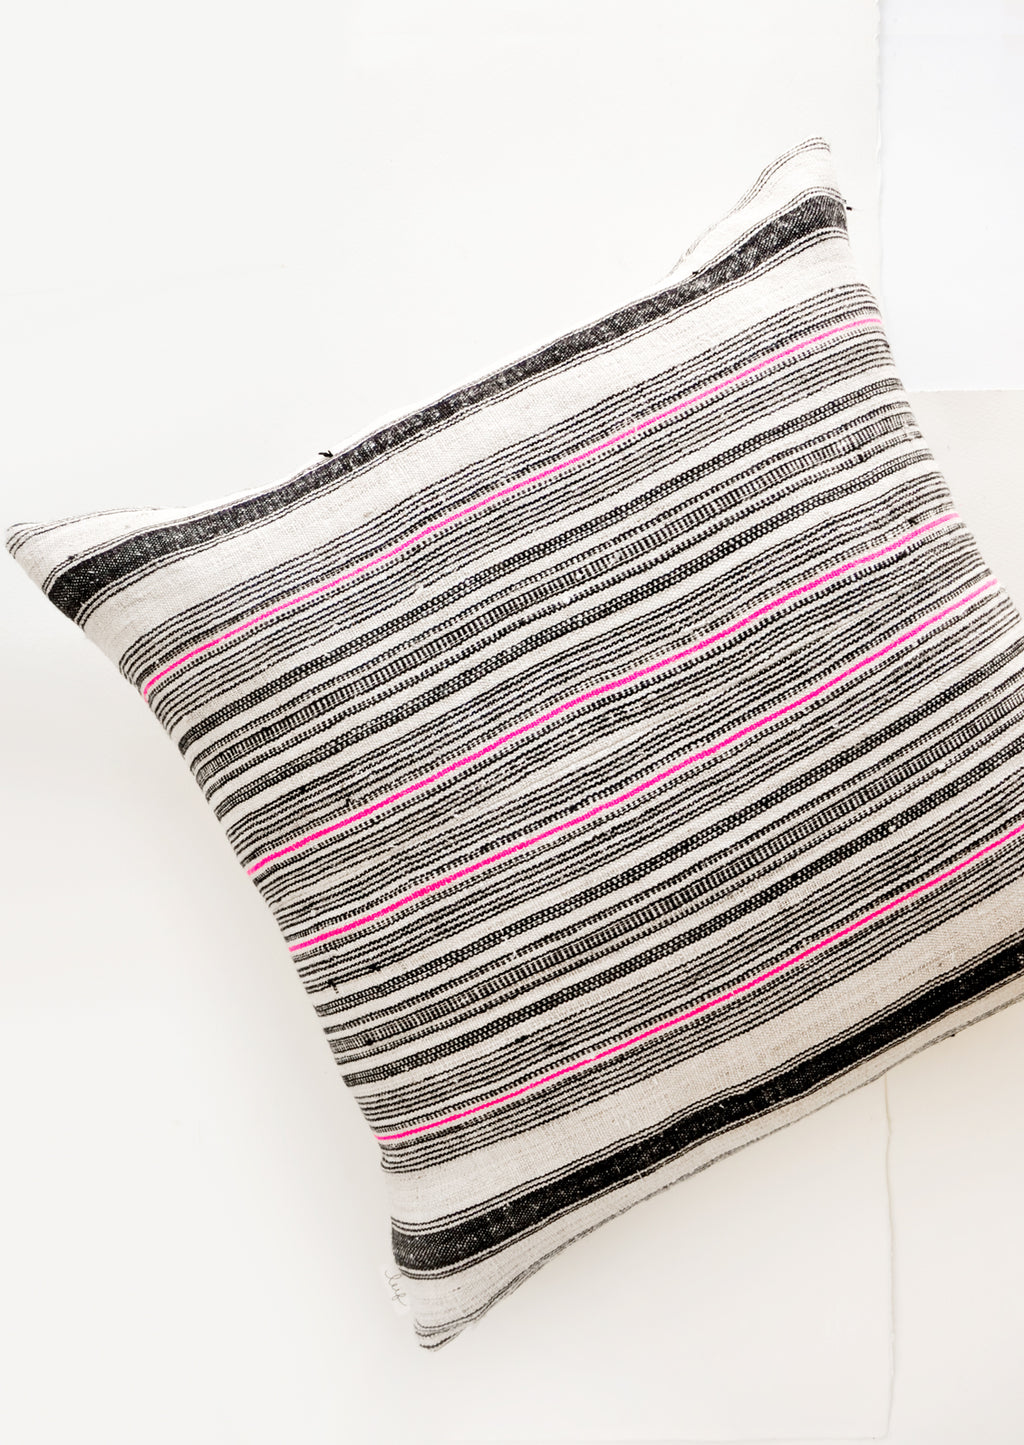 Hmong Hemp Pillow in Black & Pink in  - LEIF